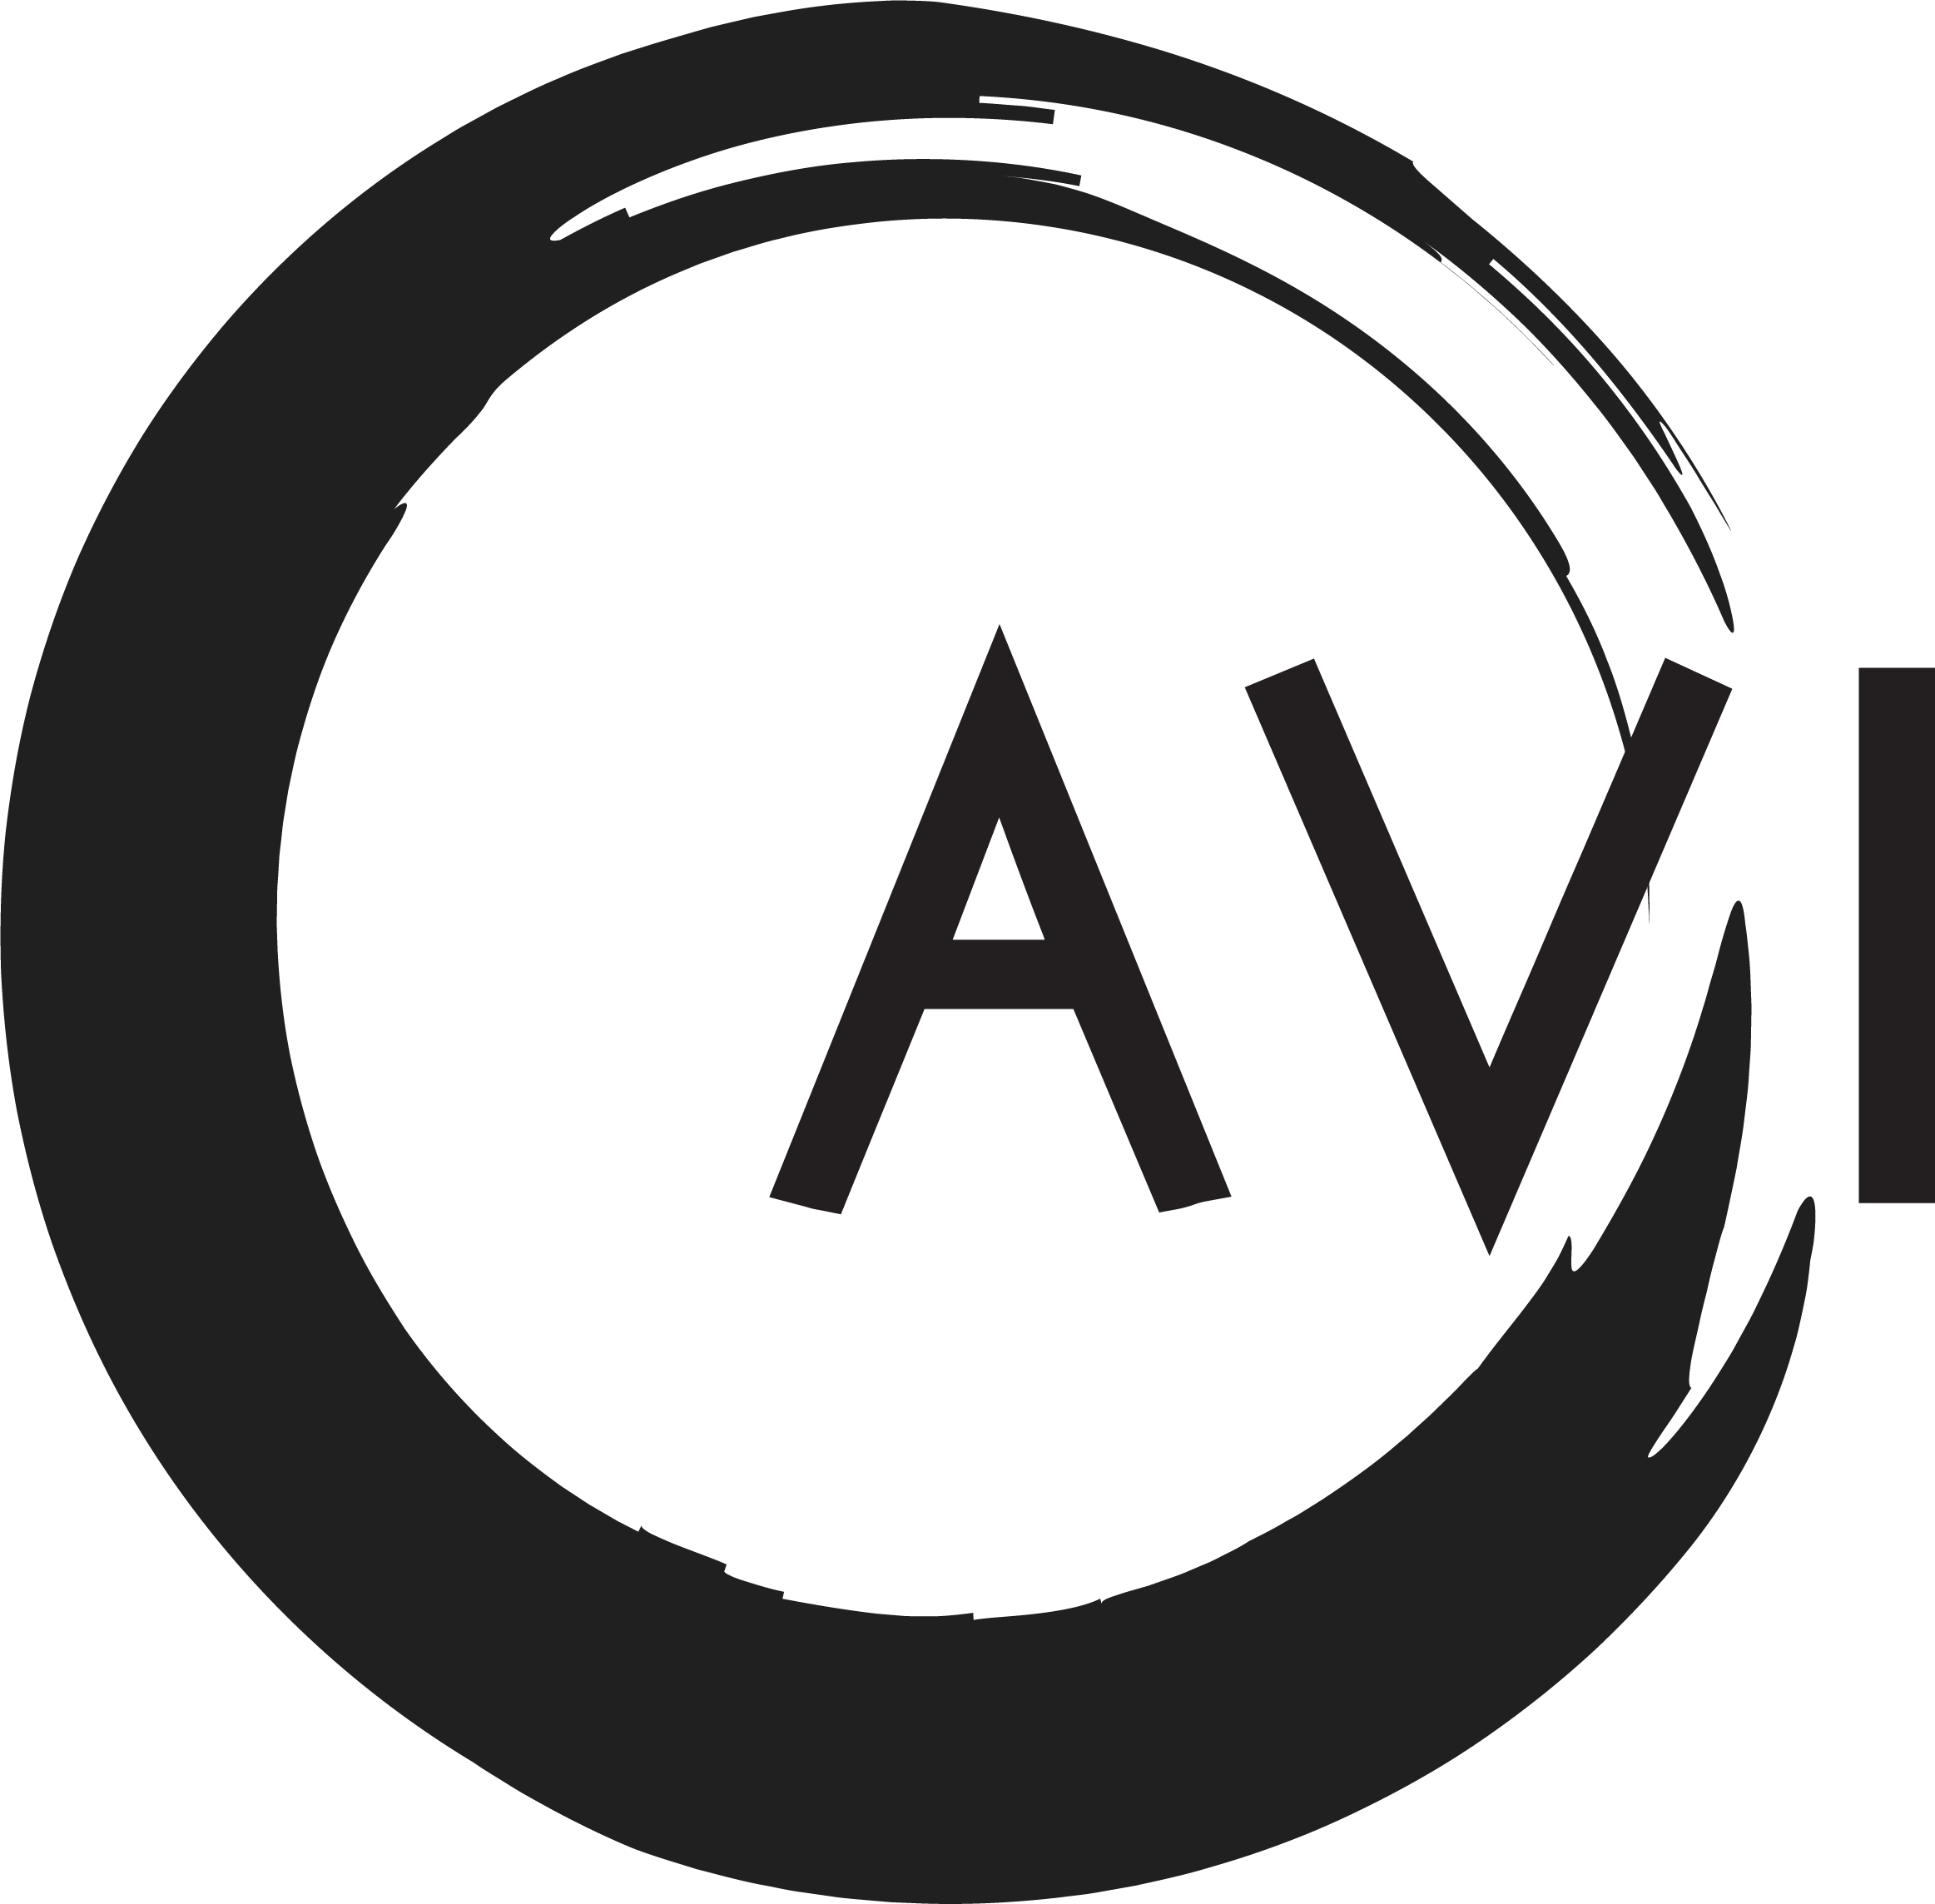 The AVI Logo - The goal was for AVI to represent a streamlined yet whimsical experience for the customer. Symbolically we decided that a circle was the best representation of this unanimity.